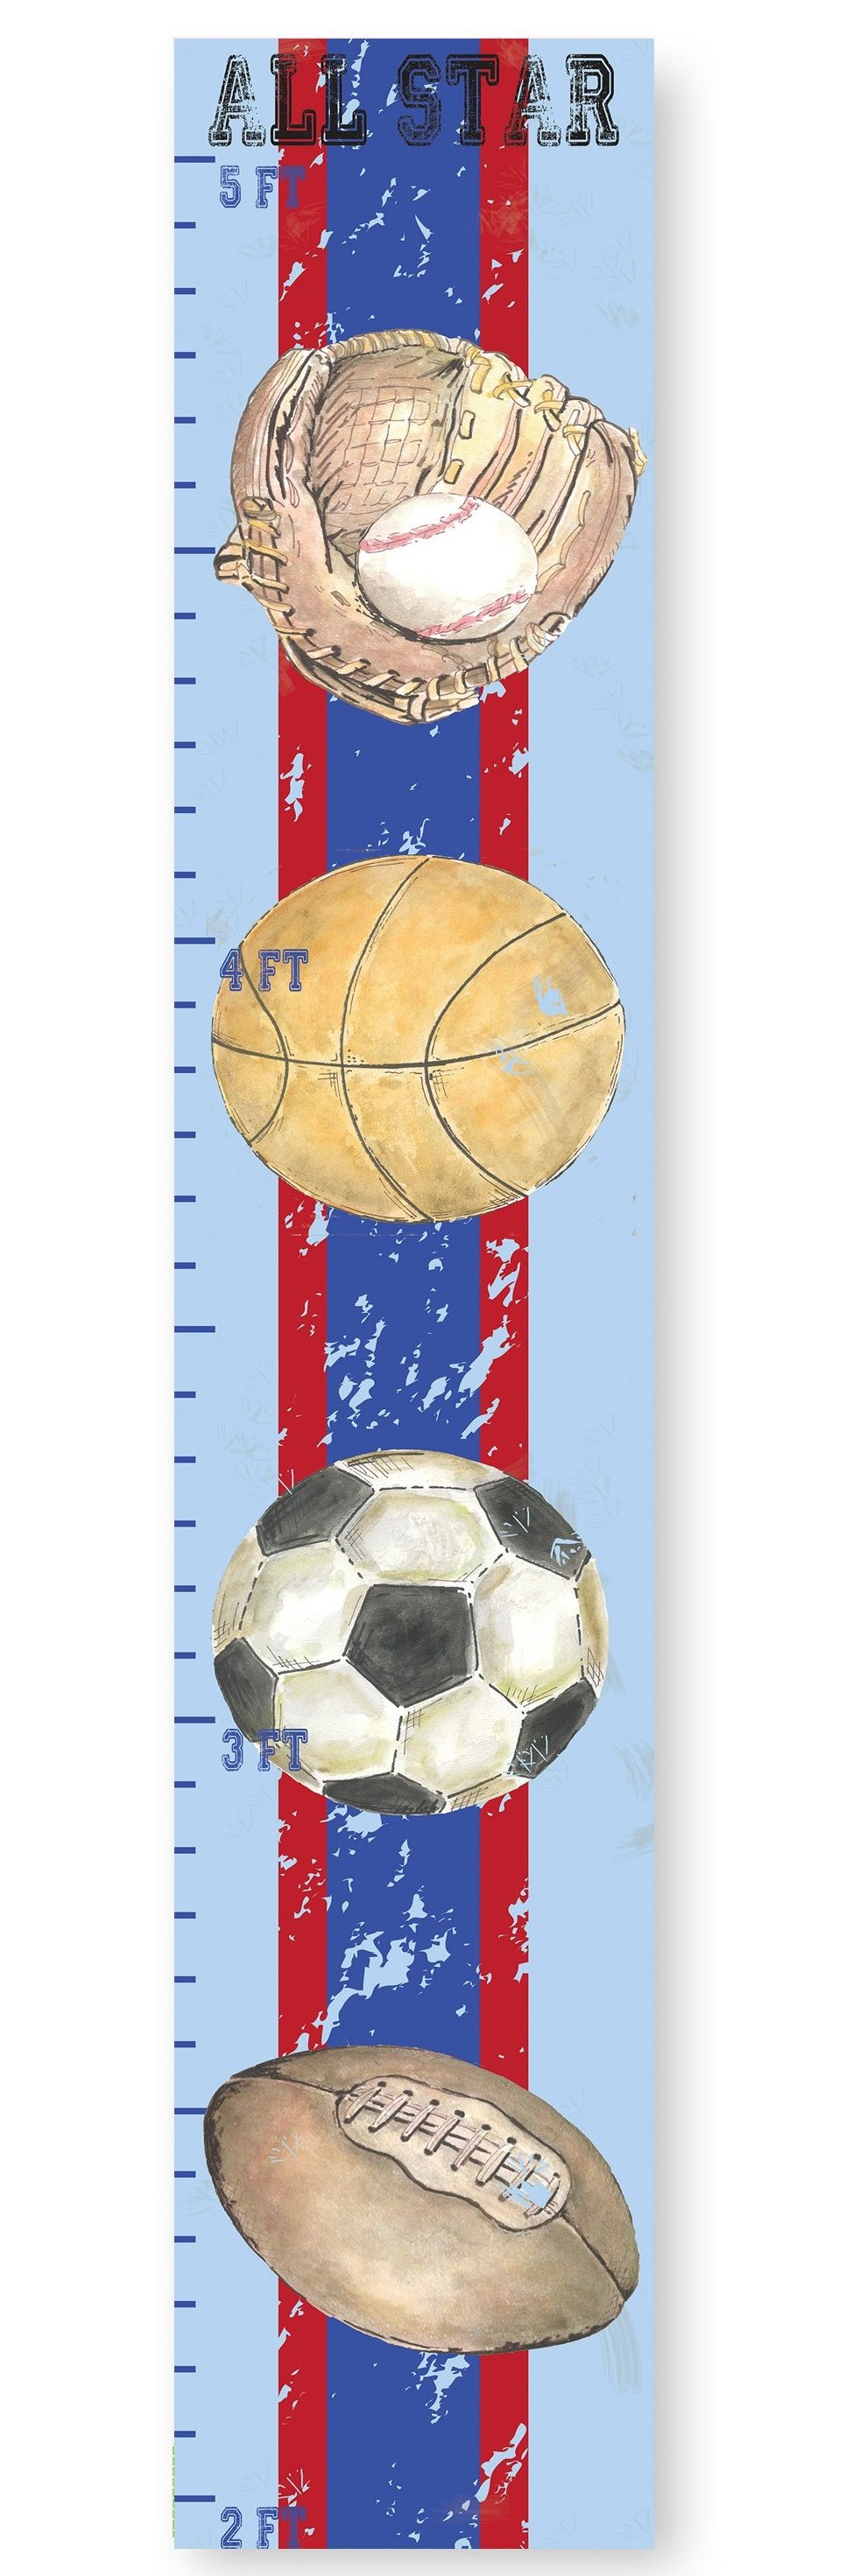 kids room sports growth chart- Stupell Industries 966 x 2943